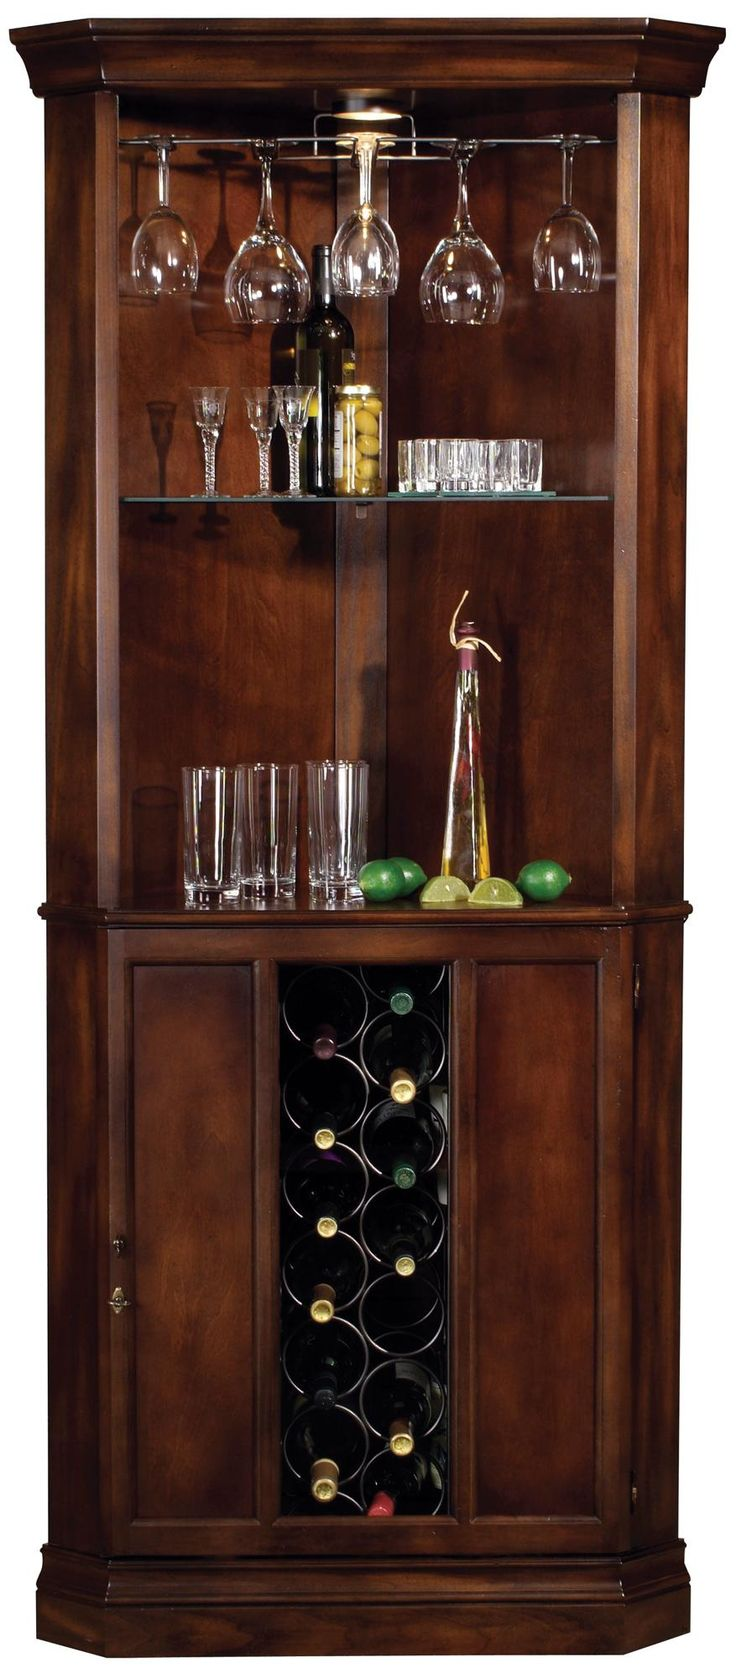 Best 25+ Bar cabinets ideas on Pinterest | Tile ideas, Kitchen ...